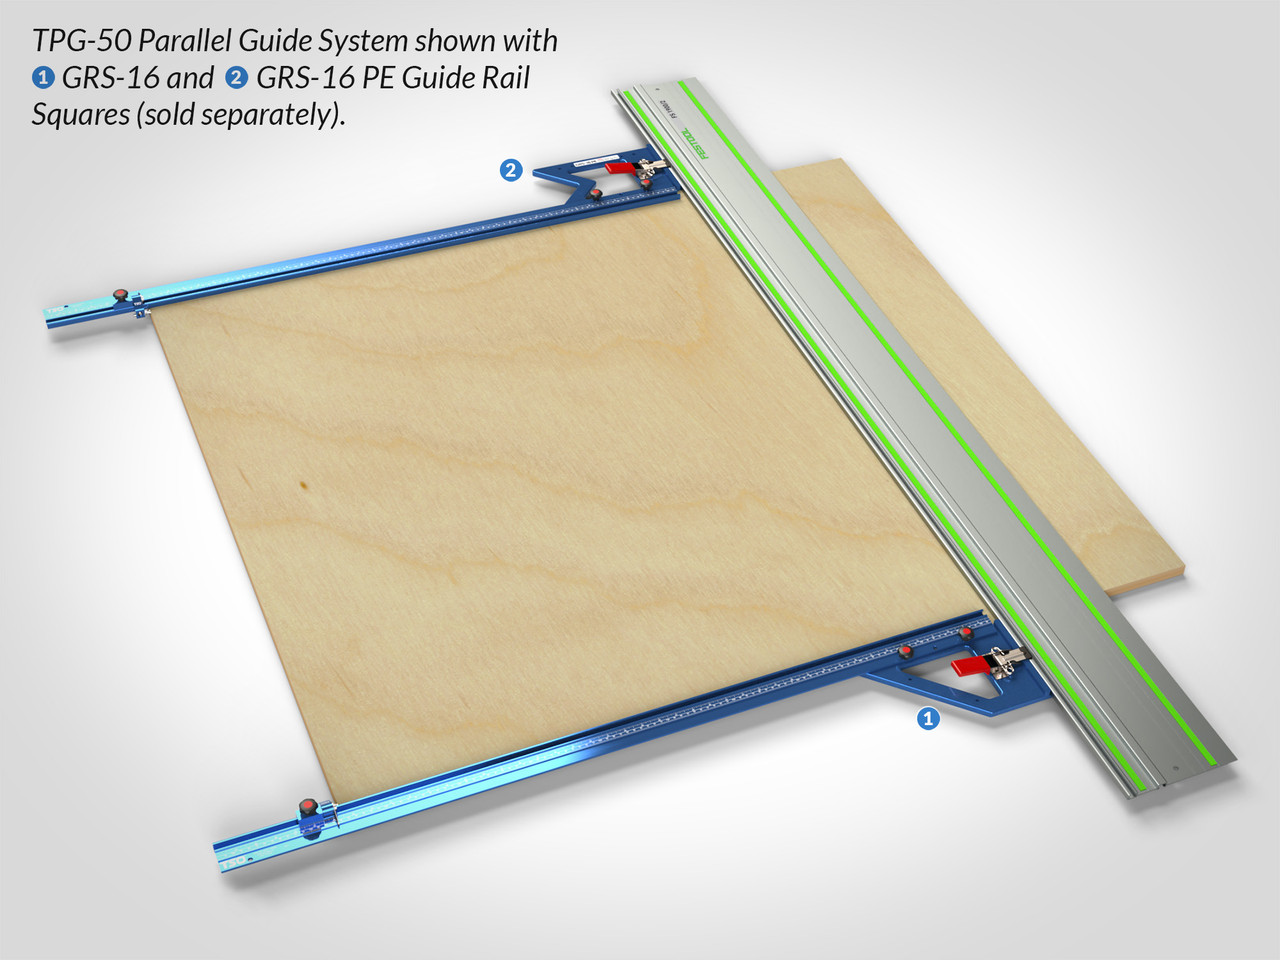 """TPG Parallel Guide System shown with 50"""" T-tracks and dual GRS-16 Guide Rail Squares for connection and squaring."""